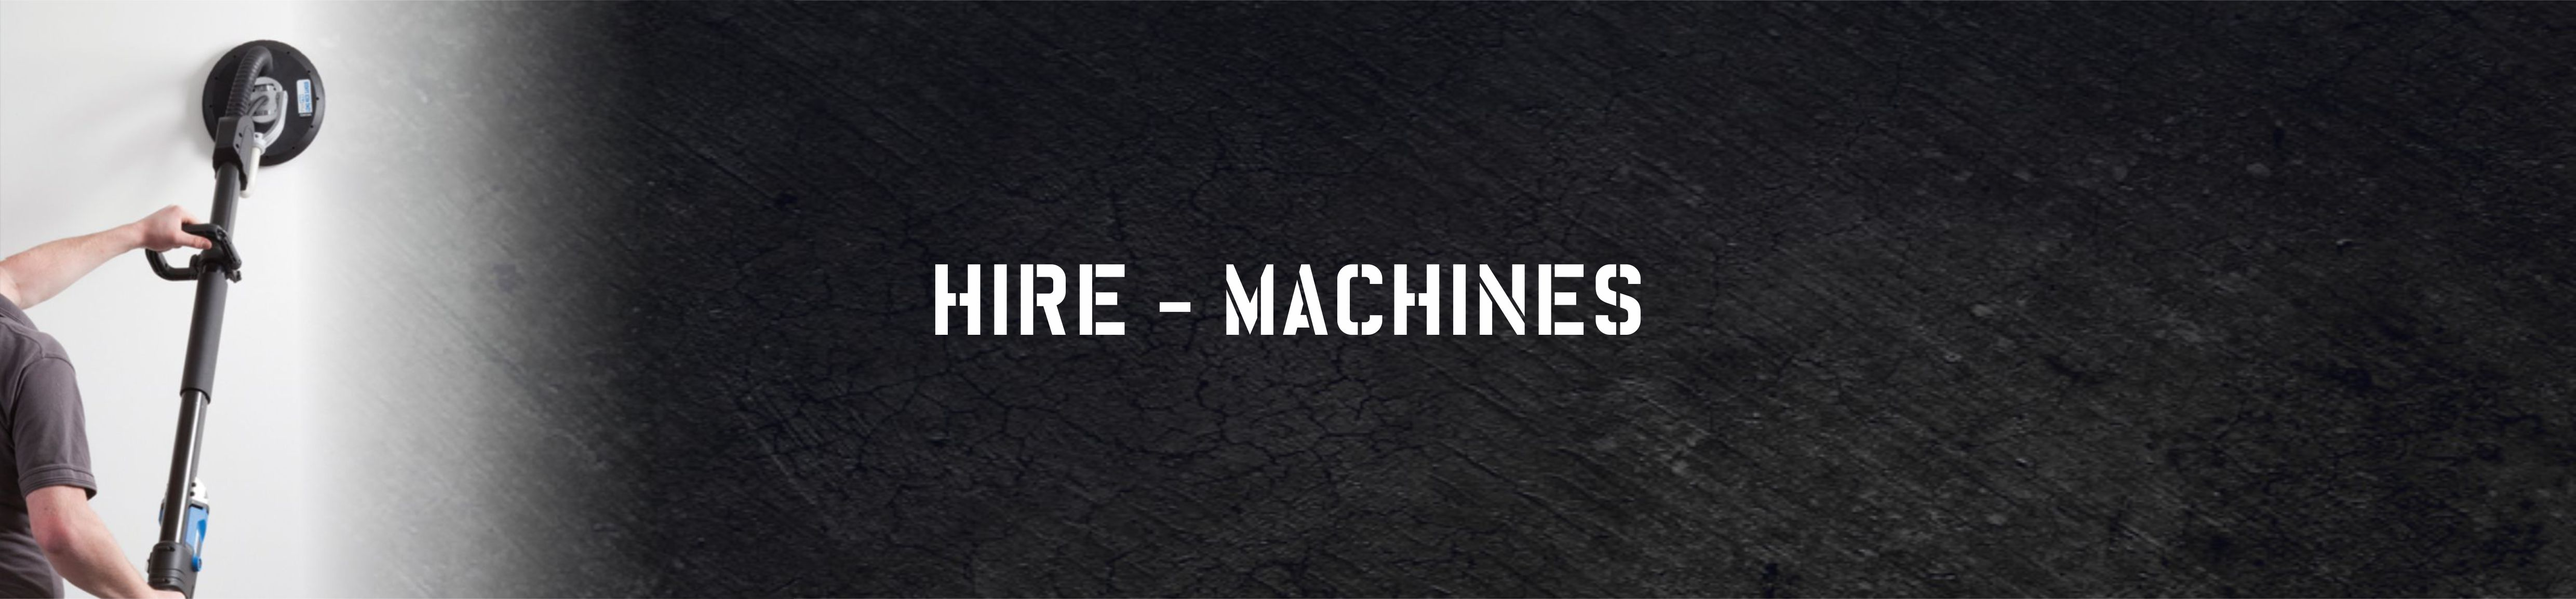 Hire - Machines